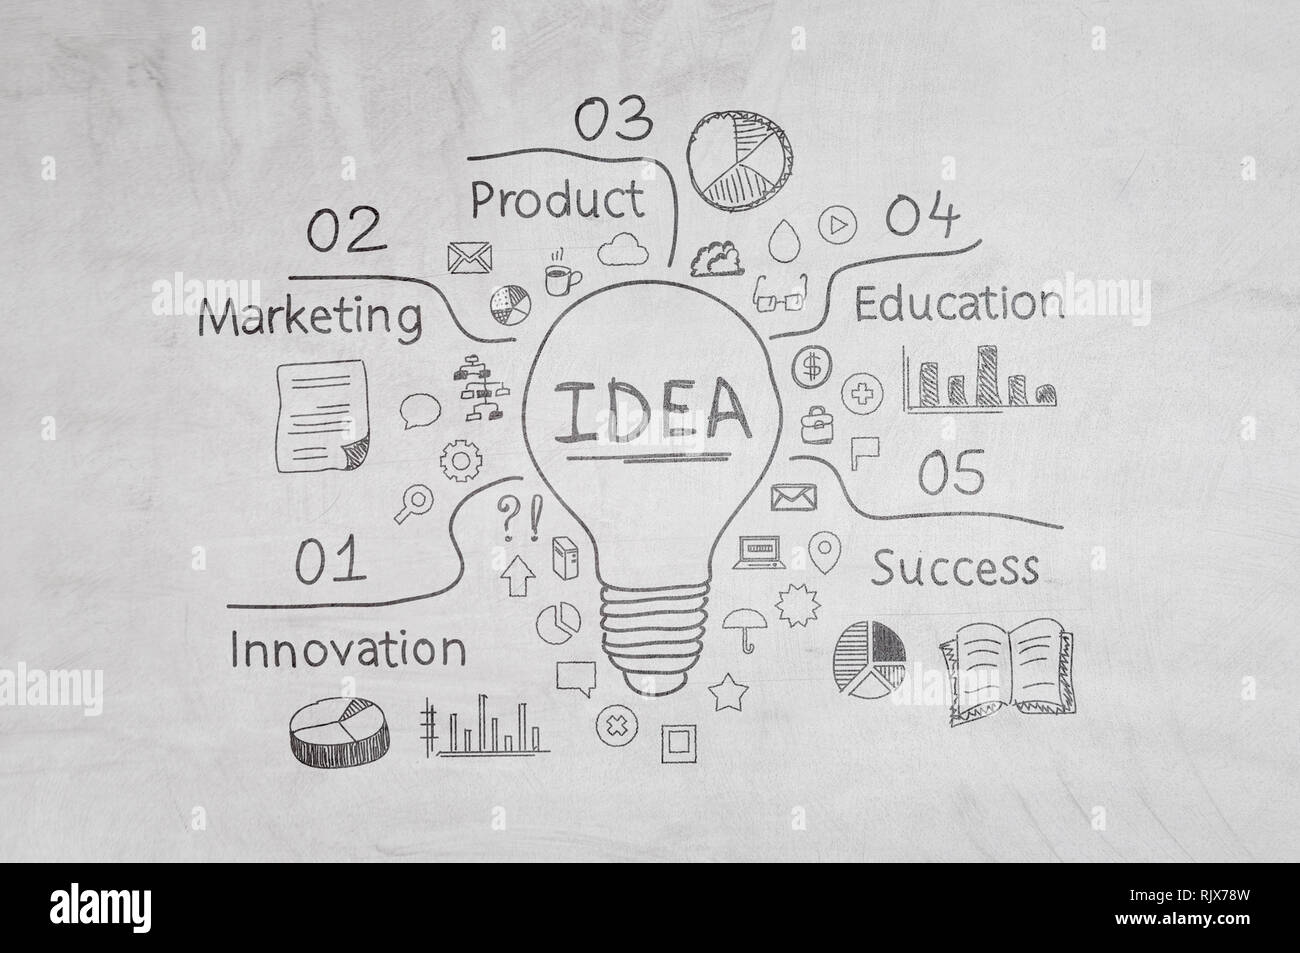 Business success ideas sketched on concrete wall Stock Photo